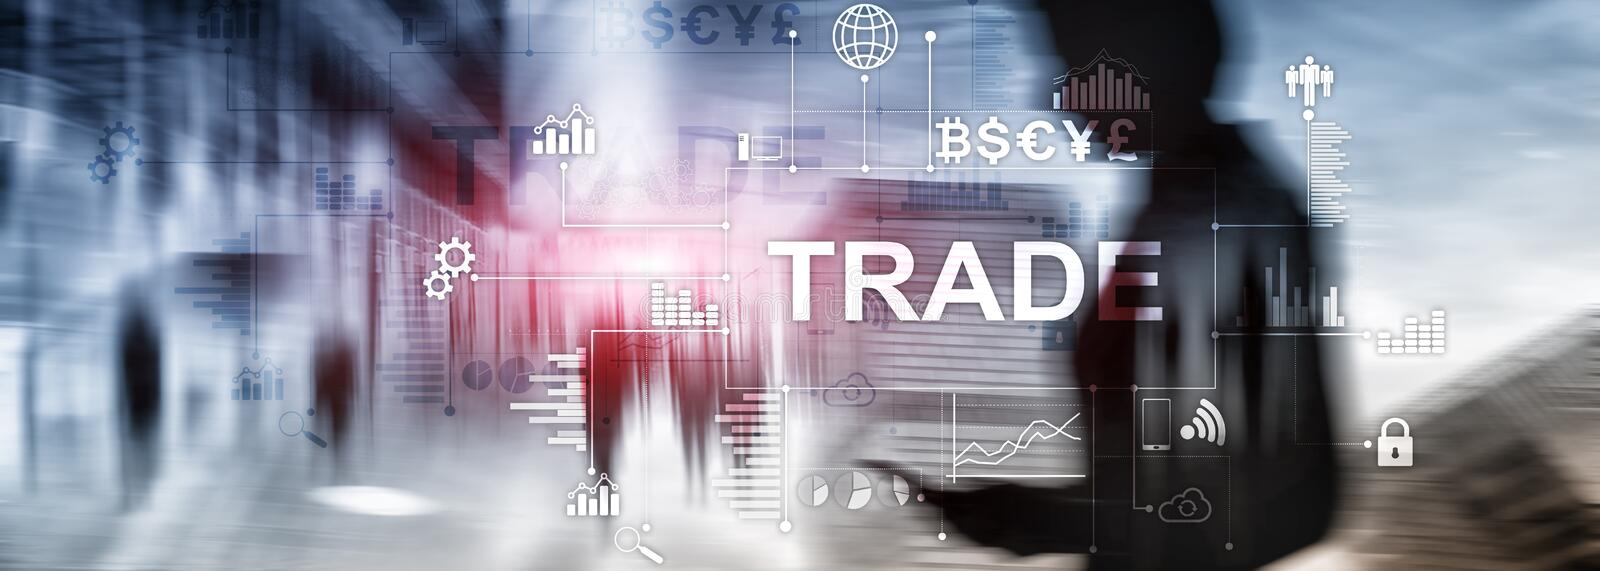 Stock trading candlestick chart and diagrams on blurred office center background.  royalty free stock photography